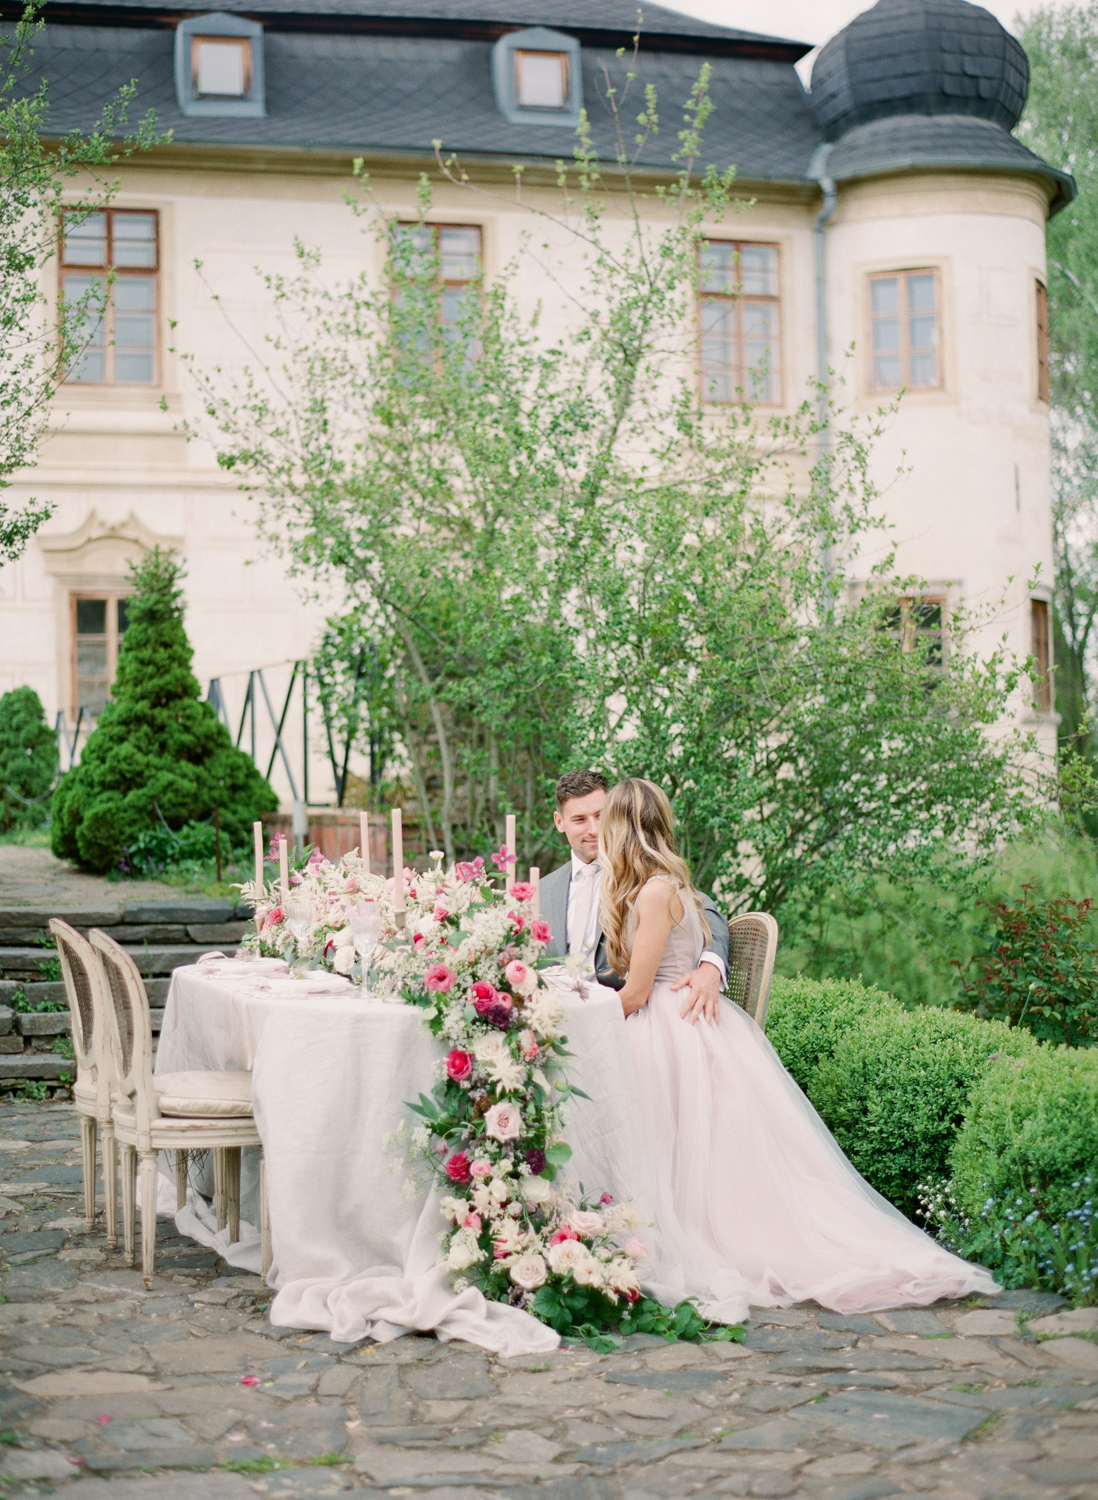 chateau_trebesice_wedding_photographer_prague_wedding_113.JPG